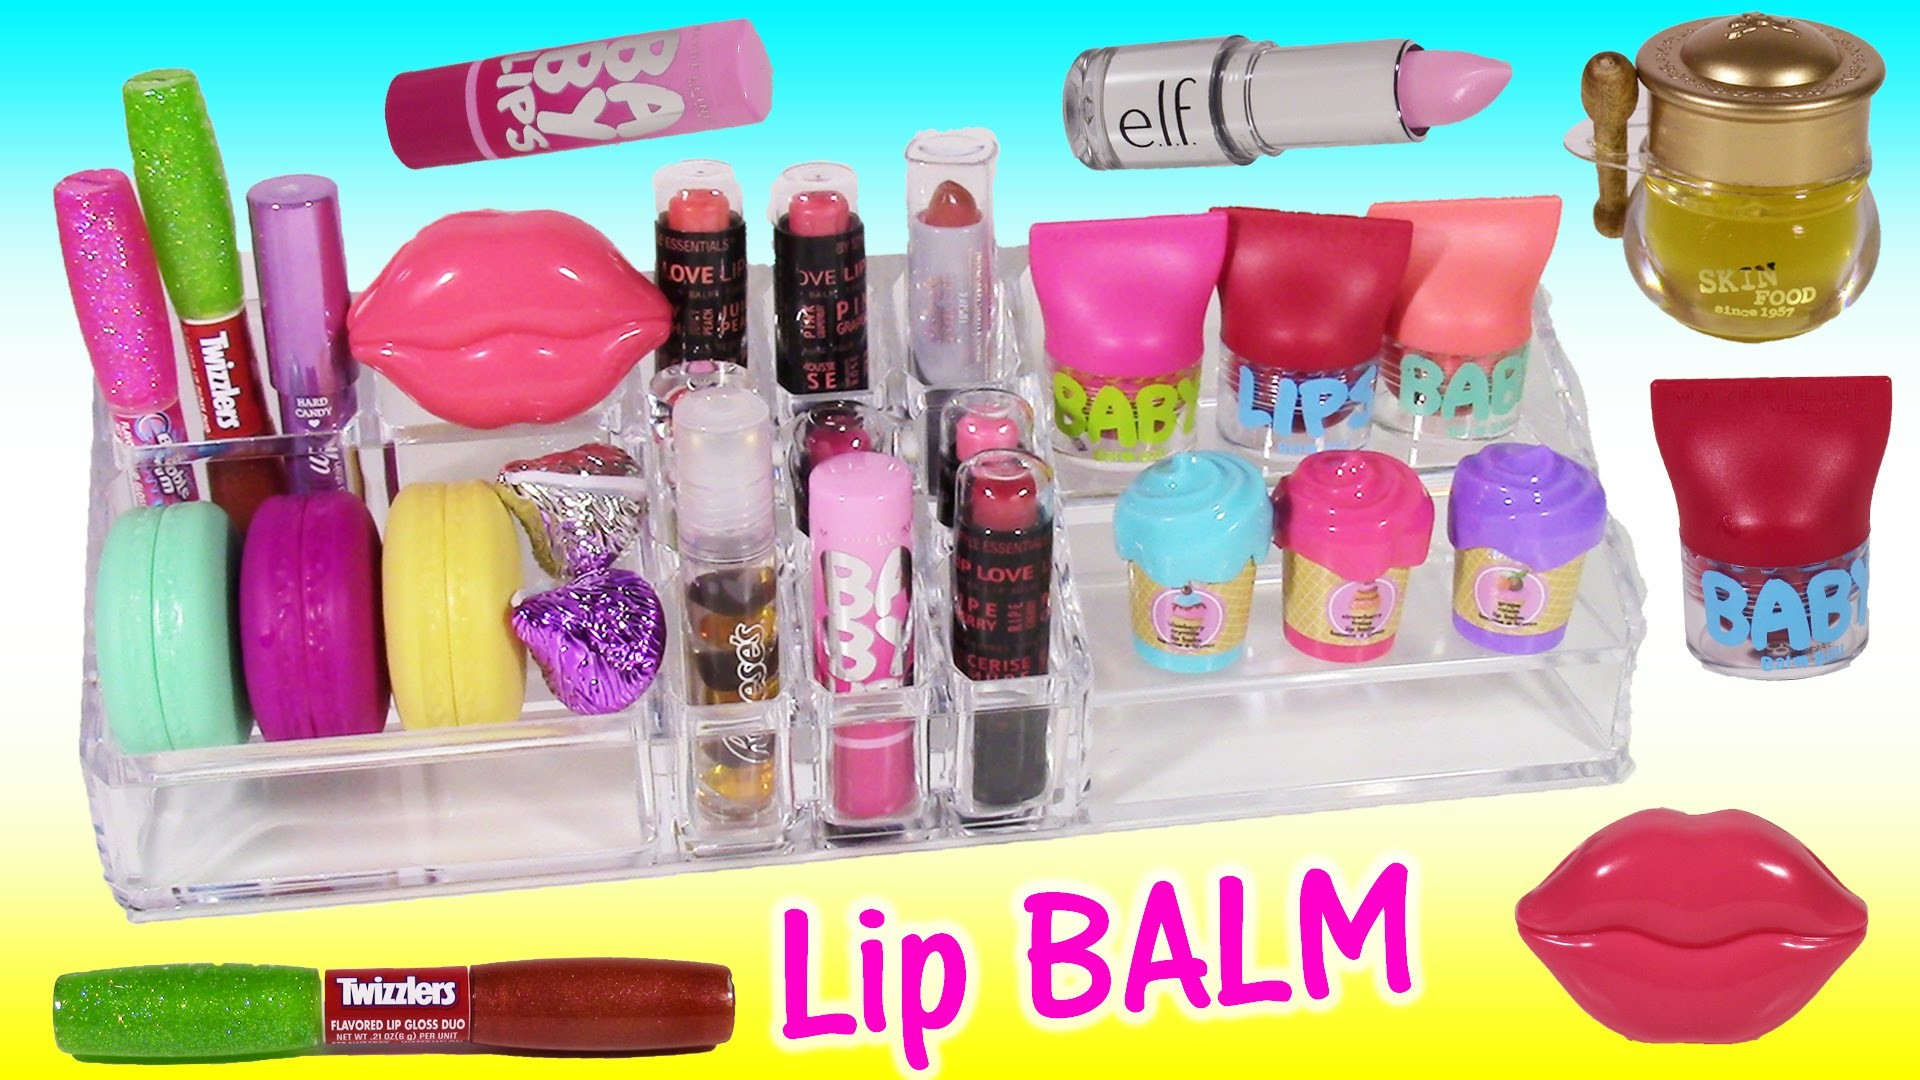 NEW LIP BALMS & GLOSSES! Candy Flavors Lip SCRUB Honey JAR! Baby LIPS!! Review & ORGANIZE!